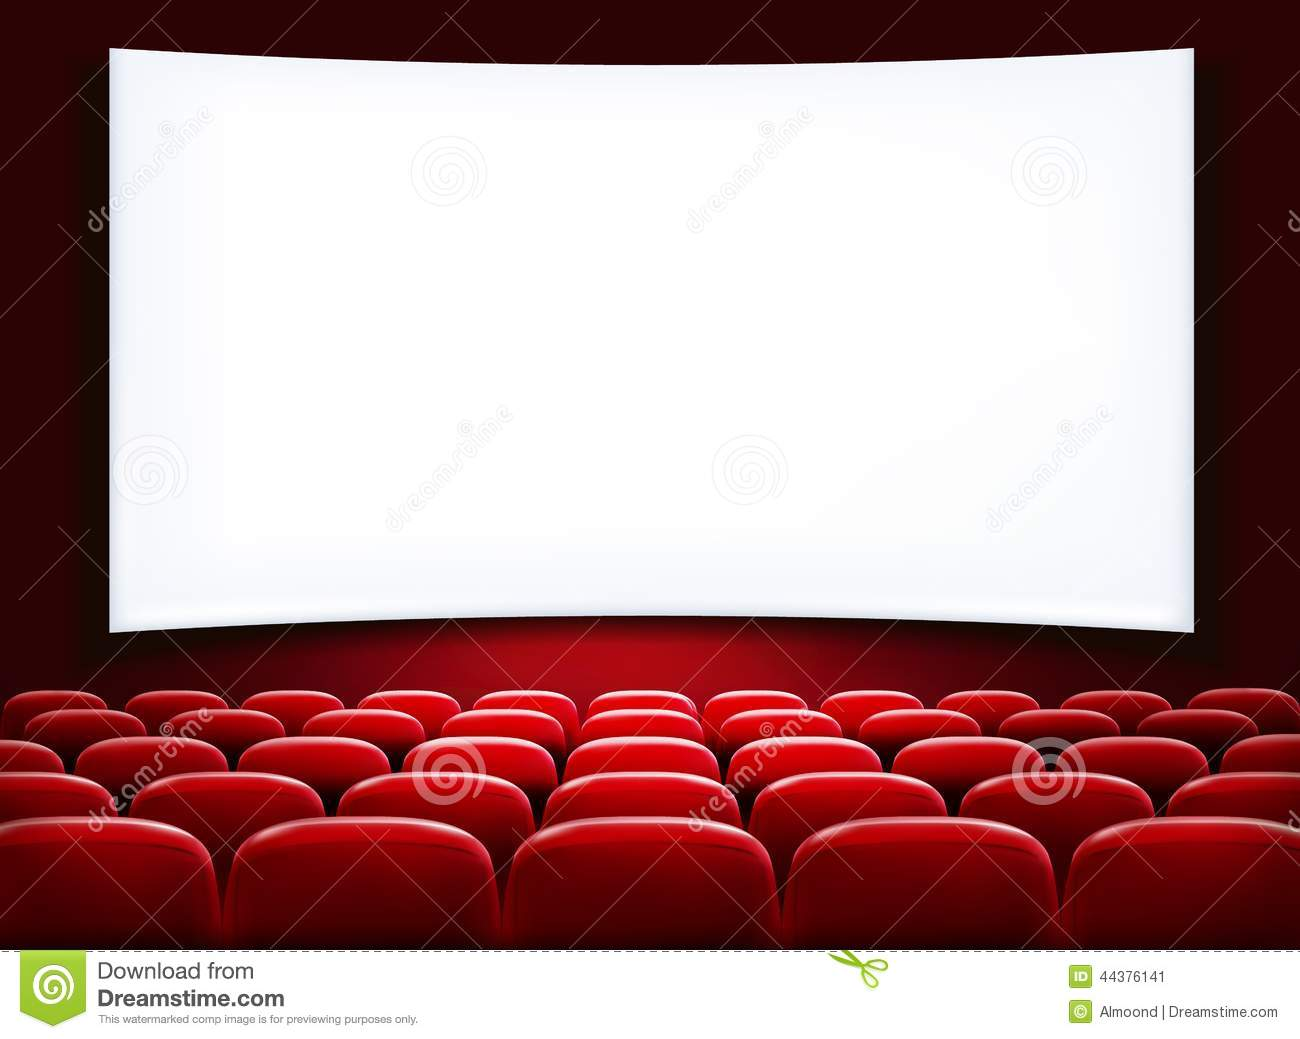 House Design Free Download Rows Of Red Cinema Or Theater Seats Stock Vector Image